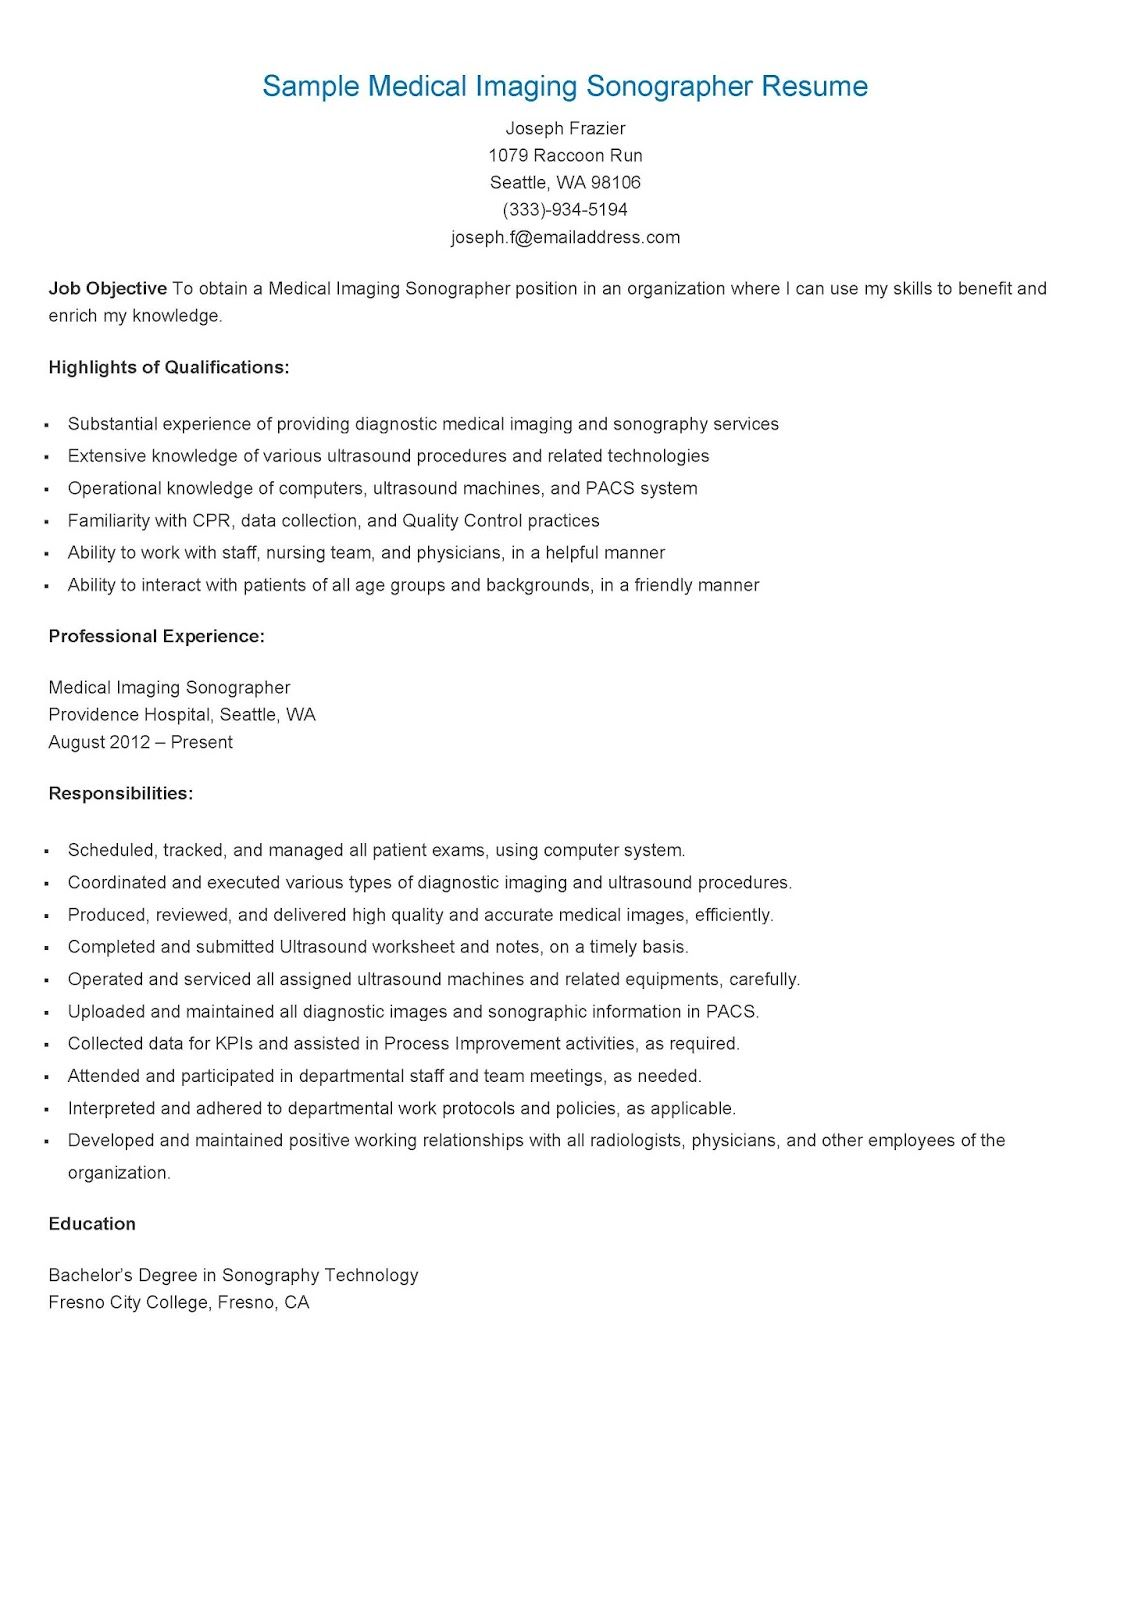 sample medical imaging sonographer resume